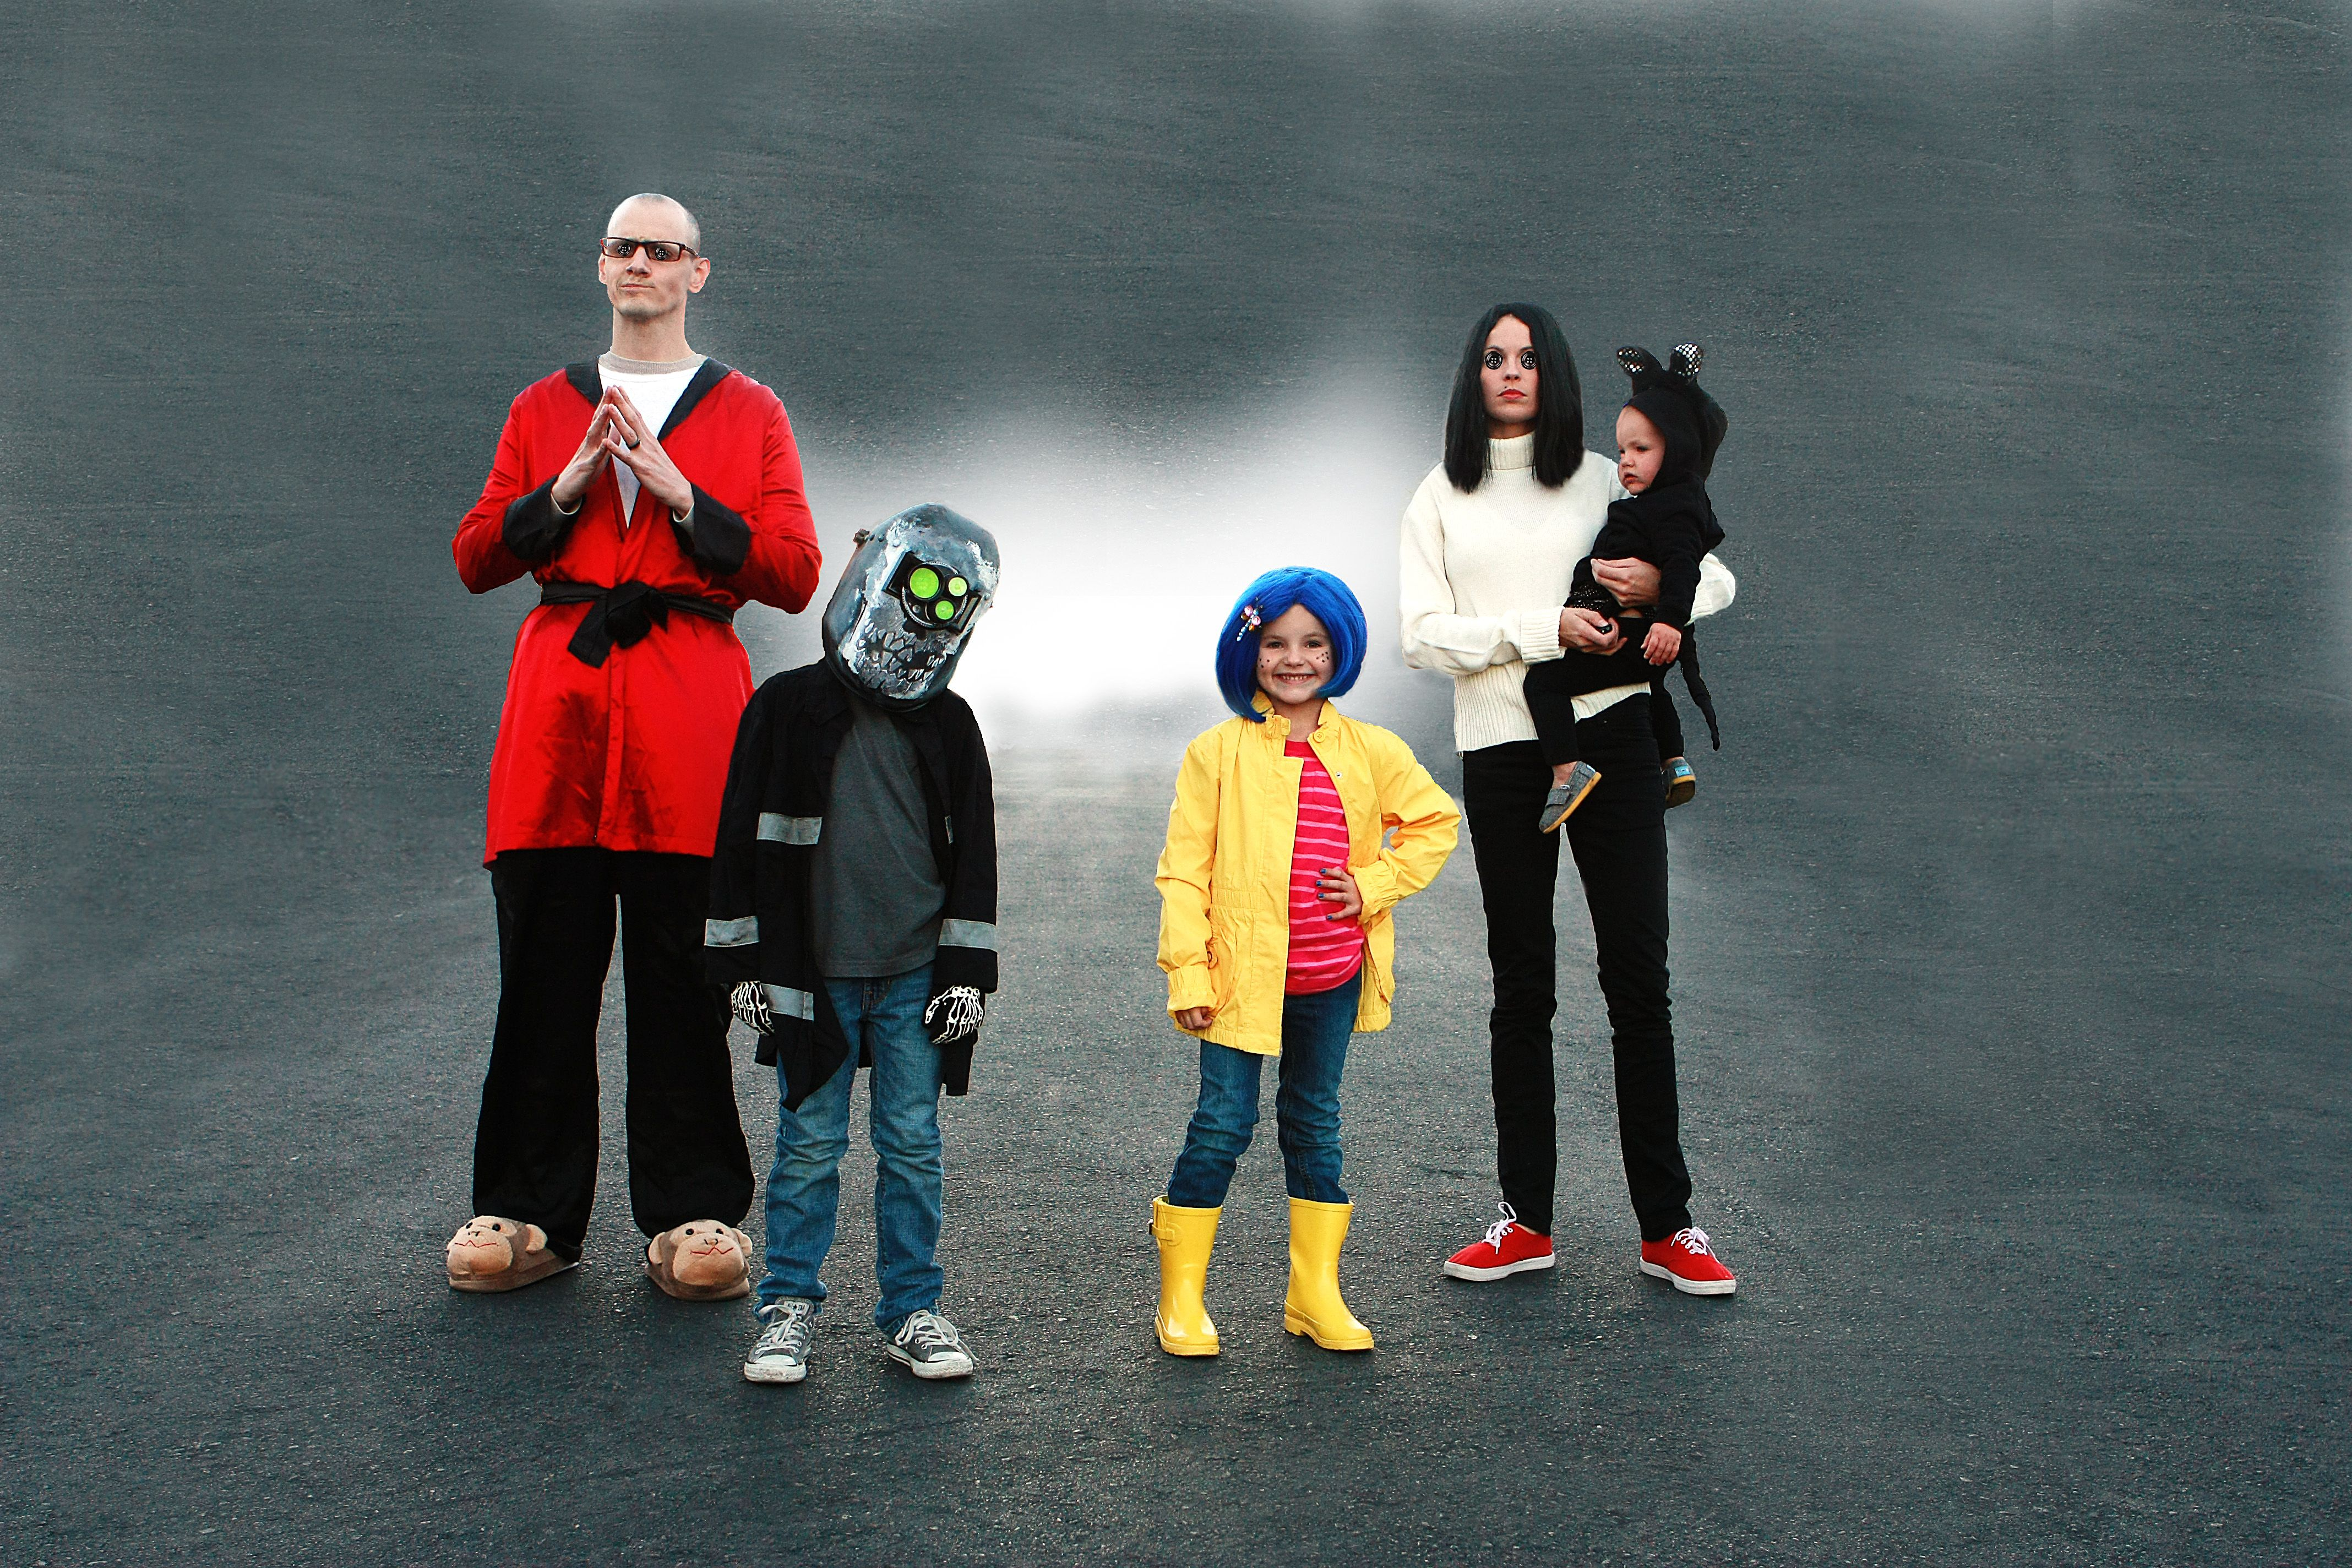 Pin By Liz Anderson On Werewolf Batmitzvah Family Costumes Family Halloween Costumes Family Halloween